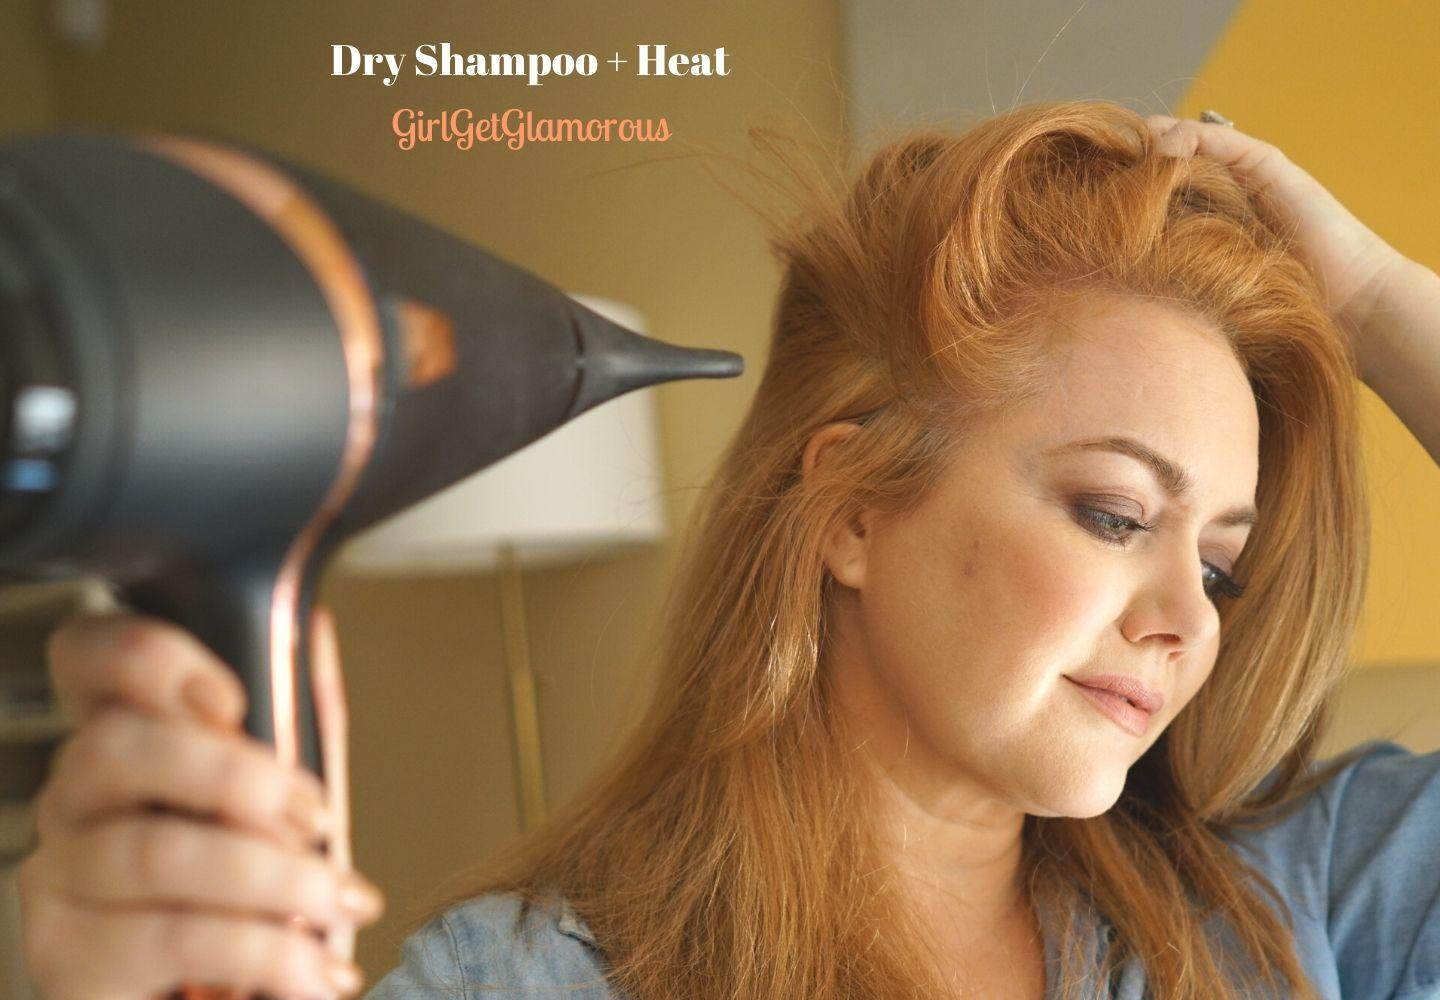 dry-shampoo-heat-blow-dry-how-to-use-properly-the-right-way-big-hair-best-tricks